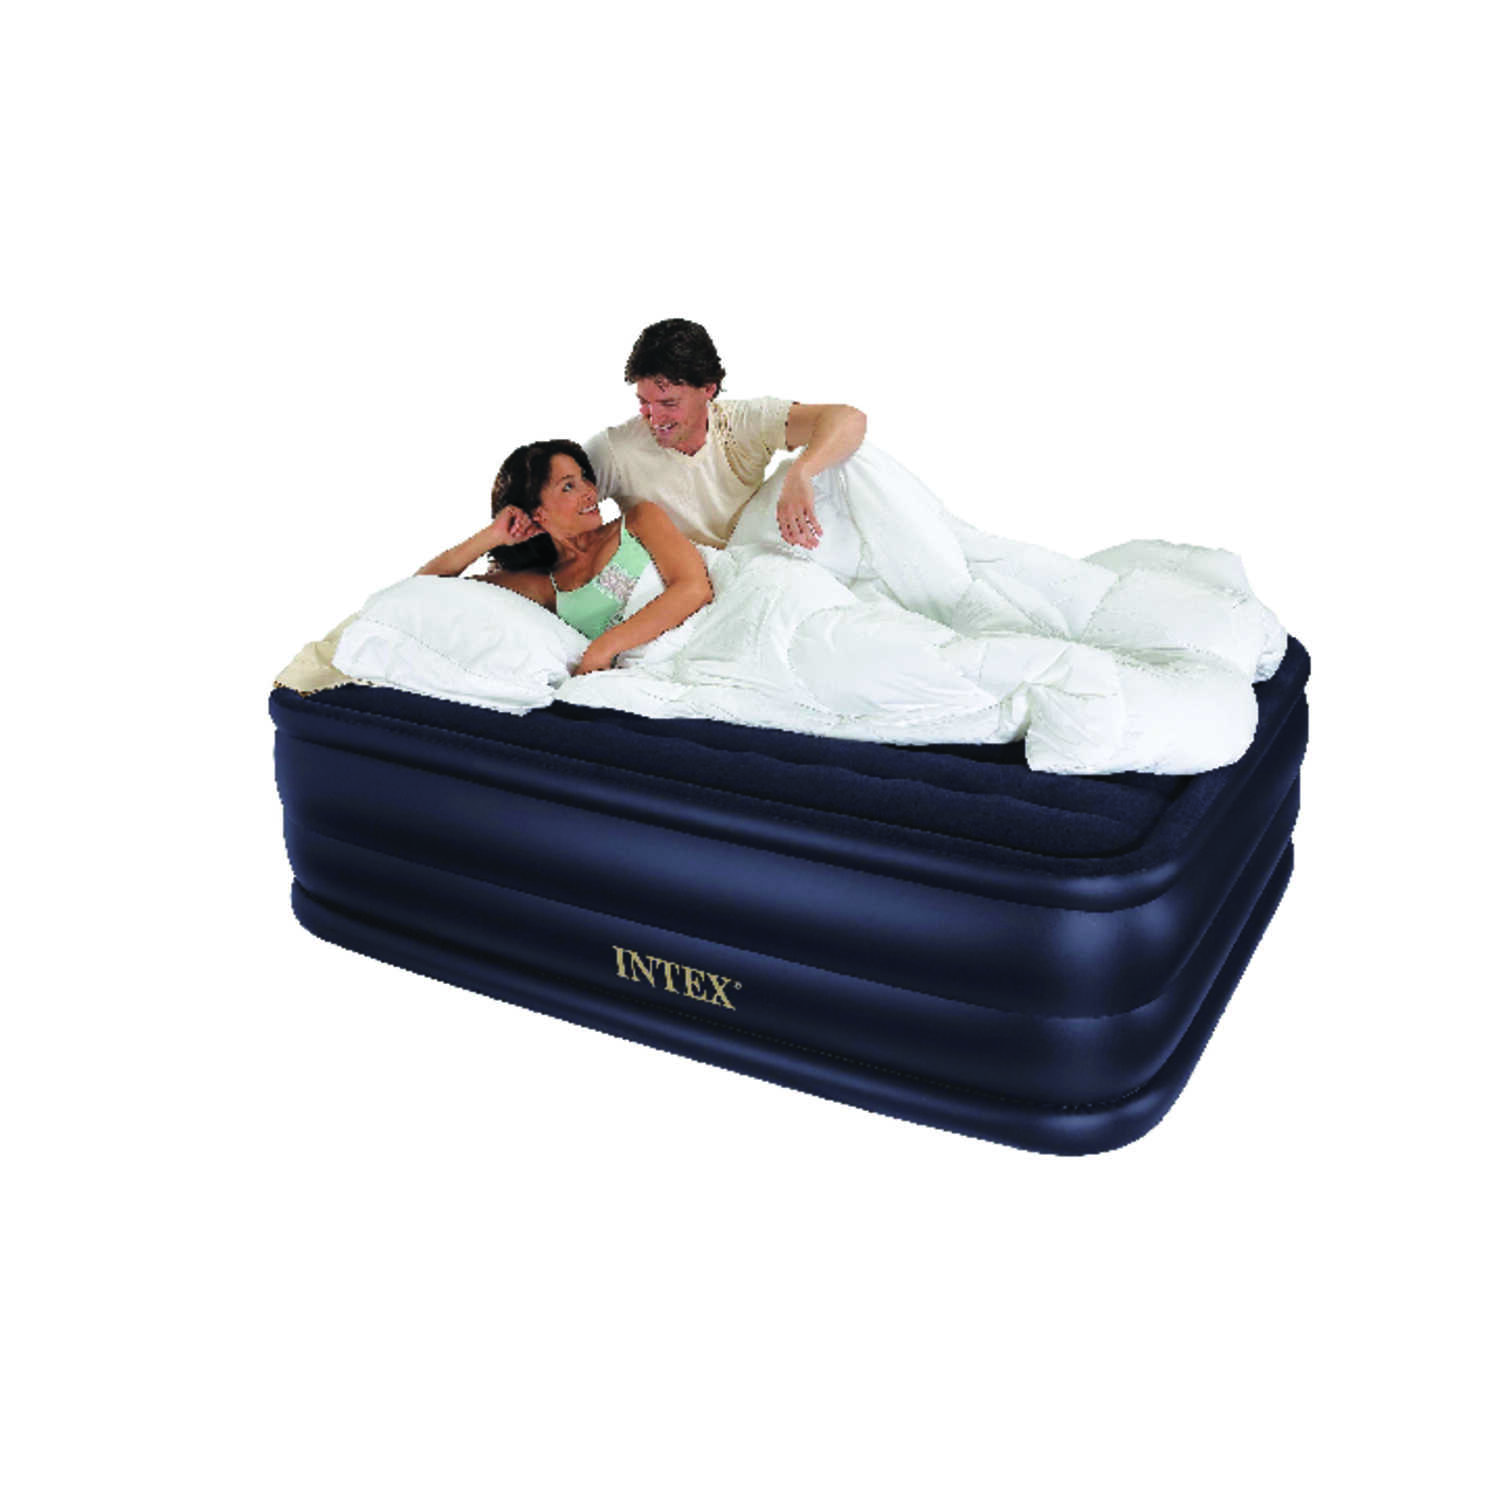 Intex  Dura Beam  Air Mattress  Queen  Pump Included